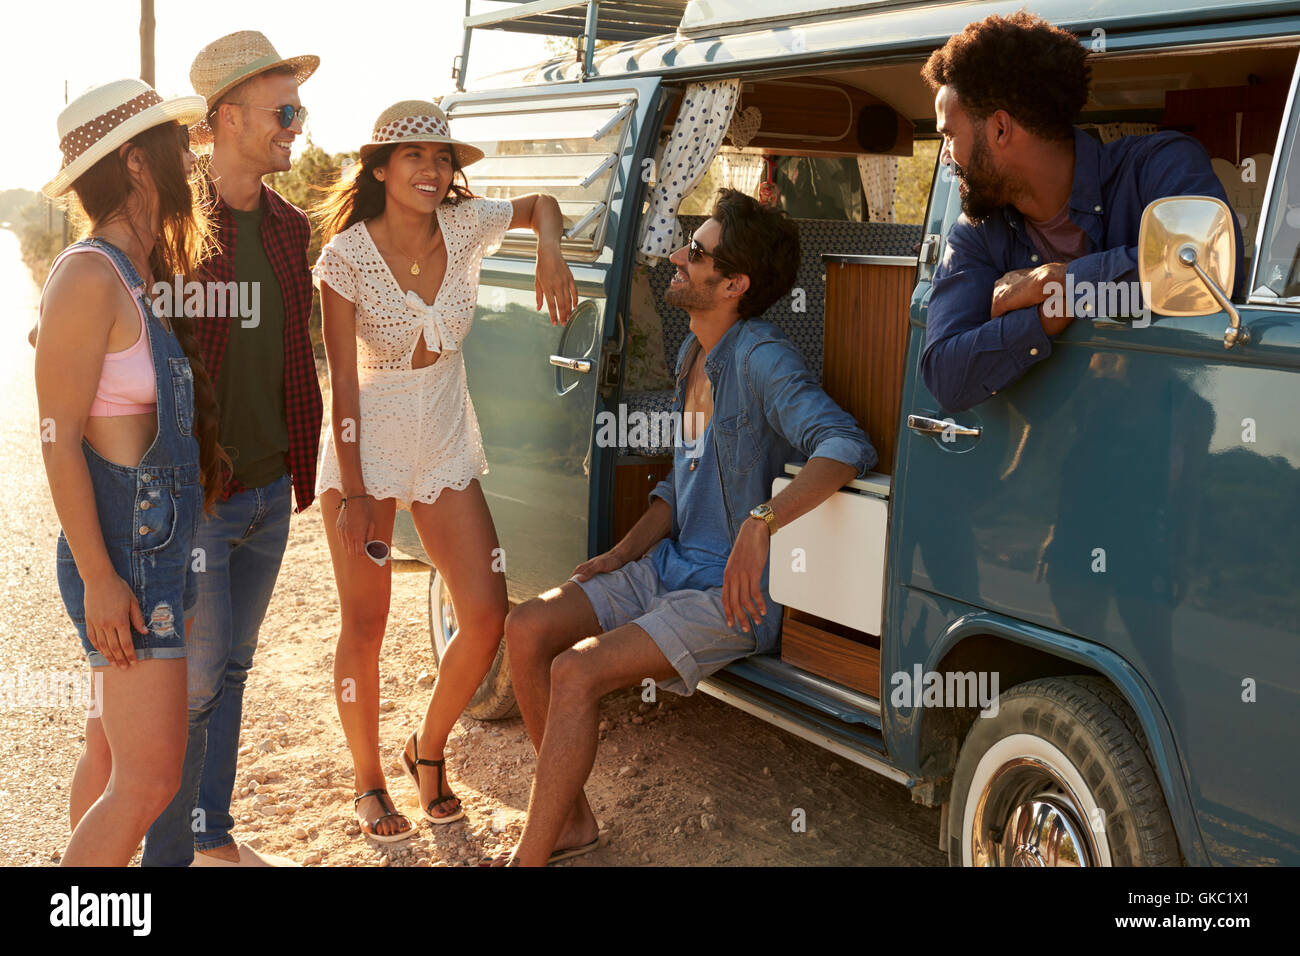 Friends on a road trip hanging out by their camper van - Stock Image